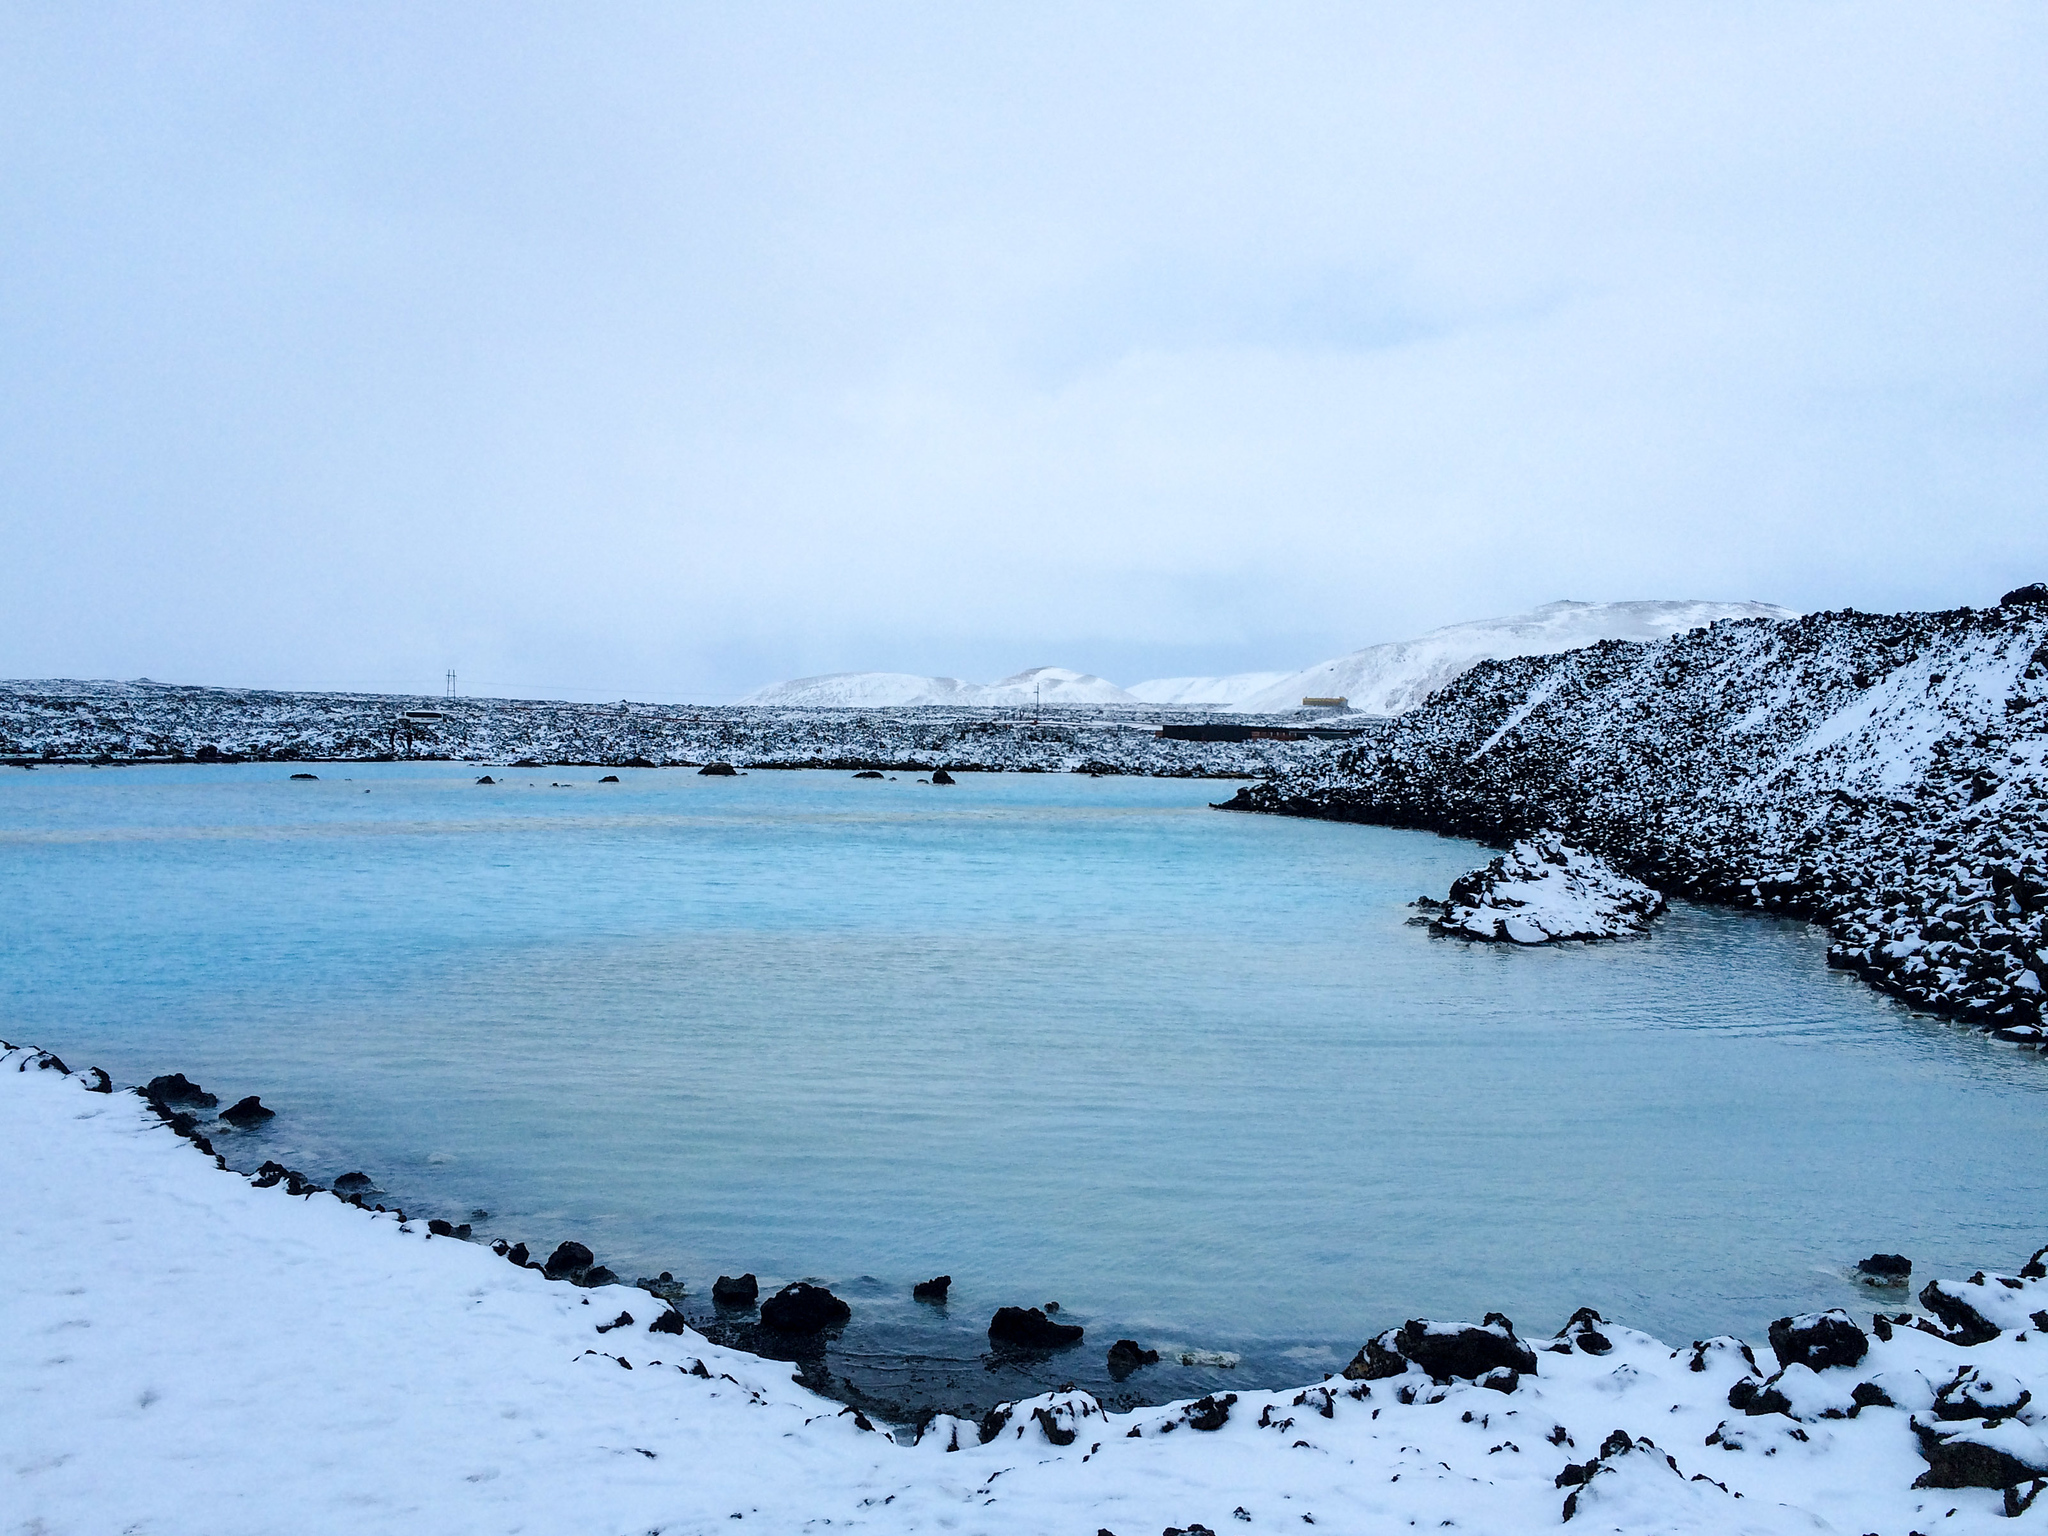 iceland solo travel means going to the blue lagoon - of course